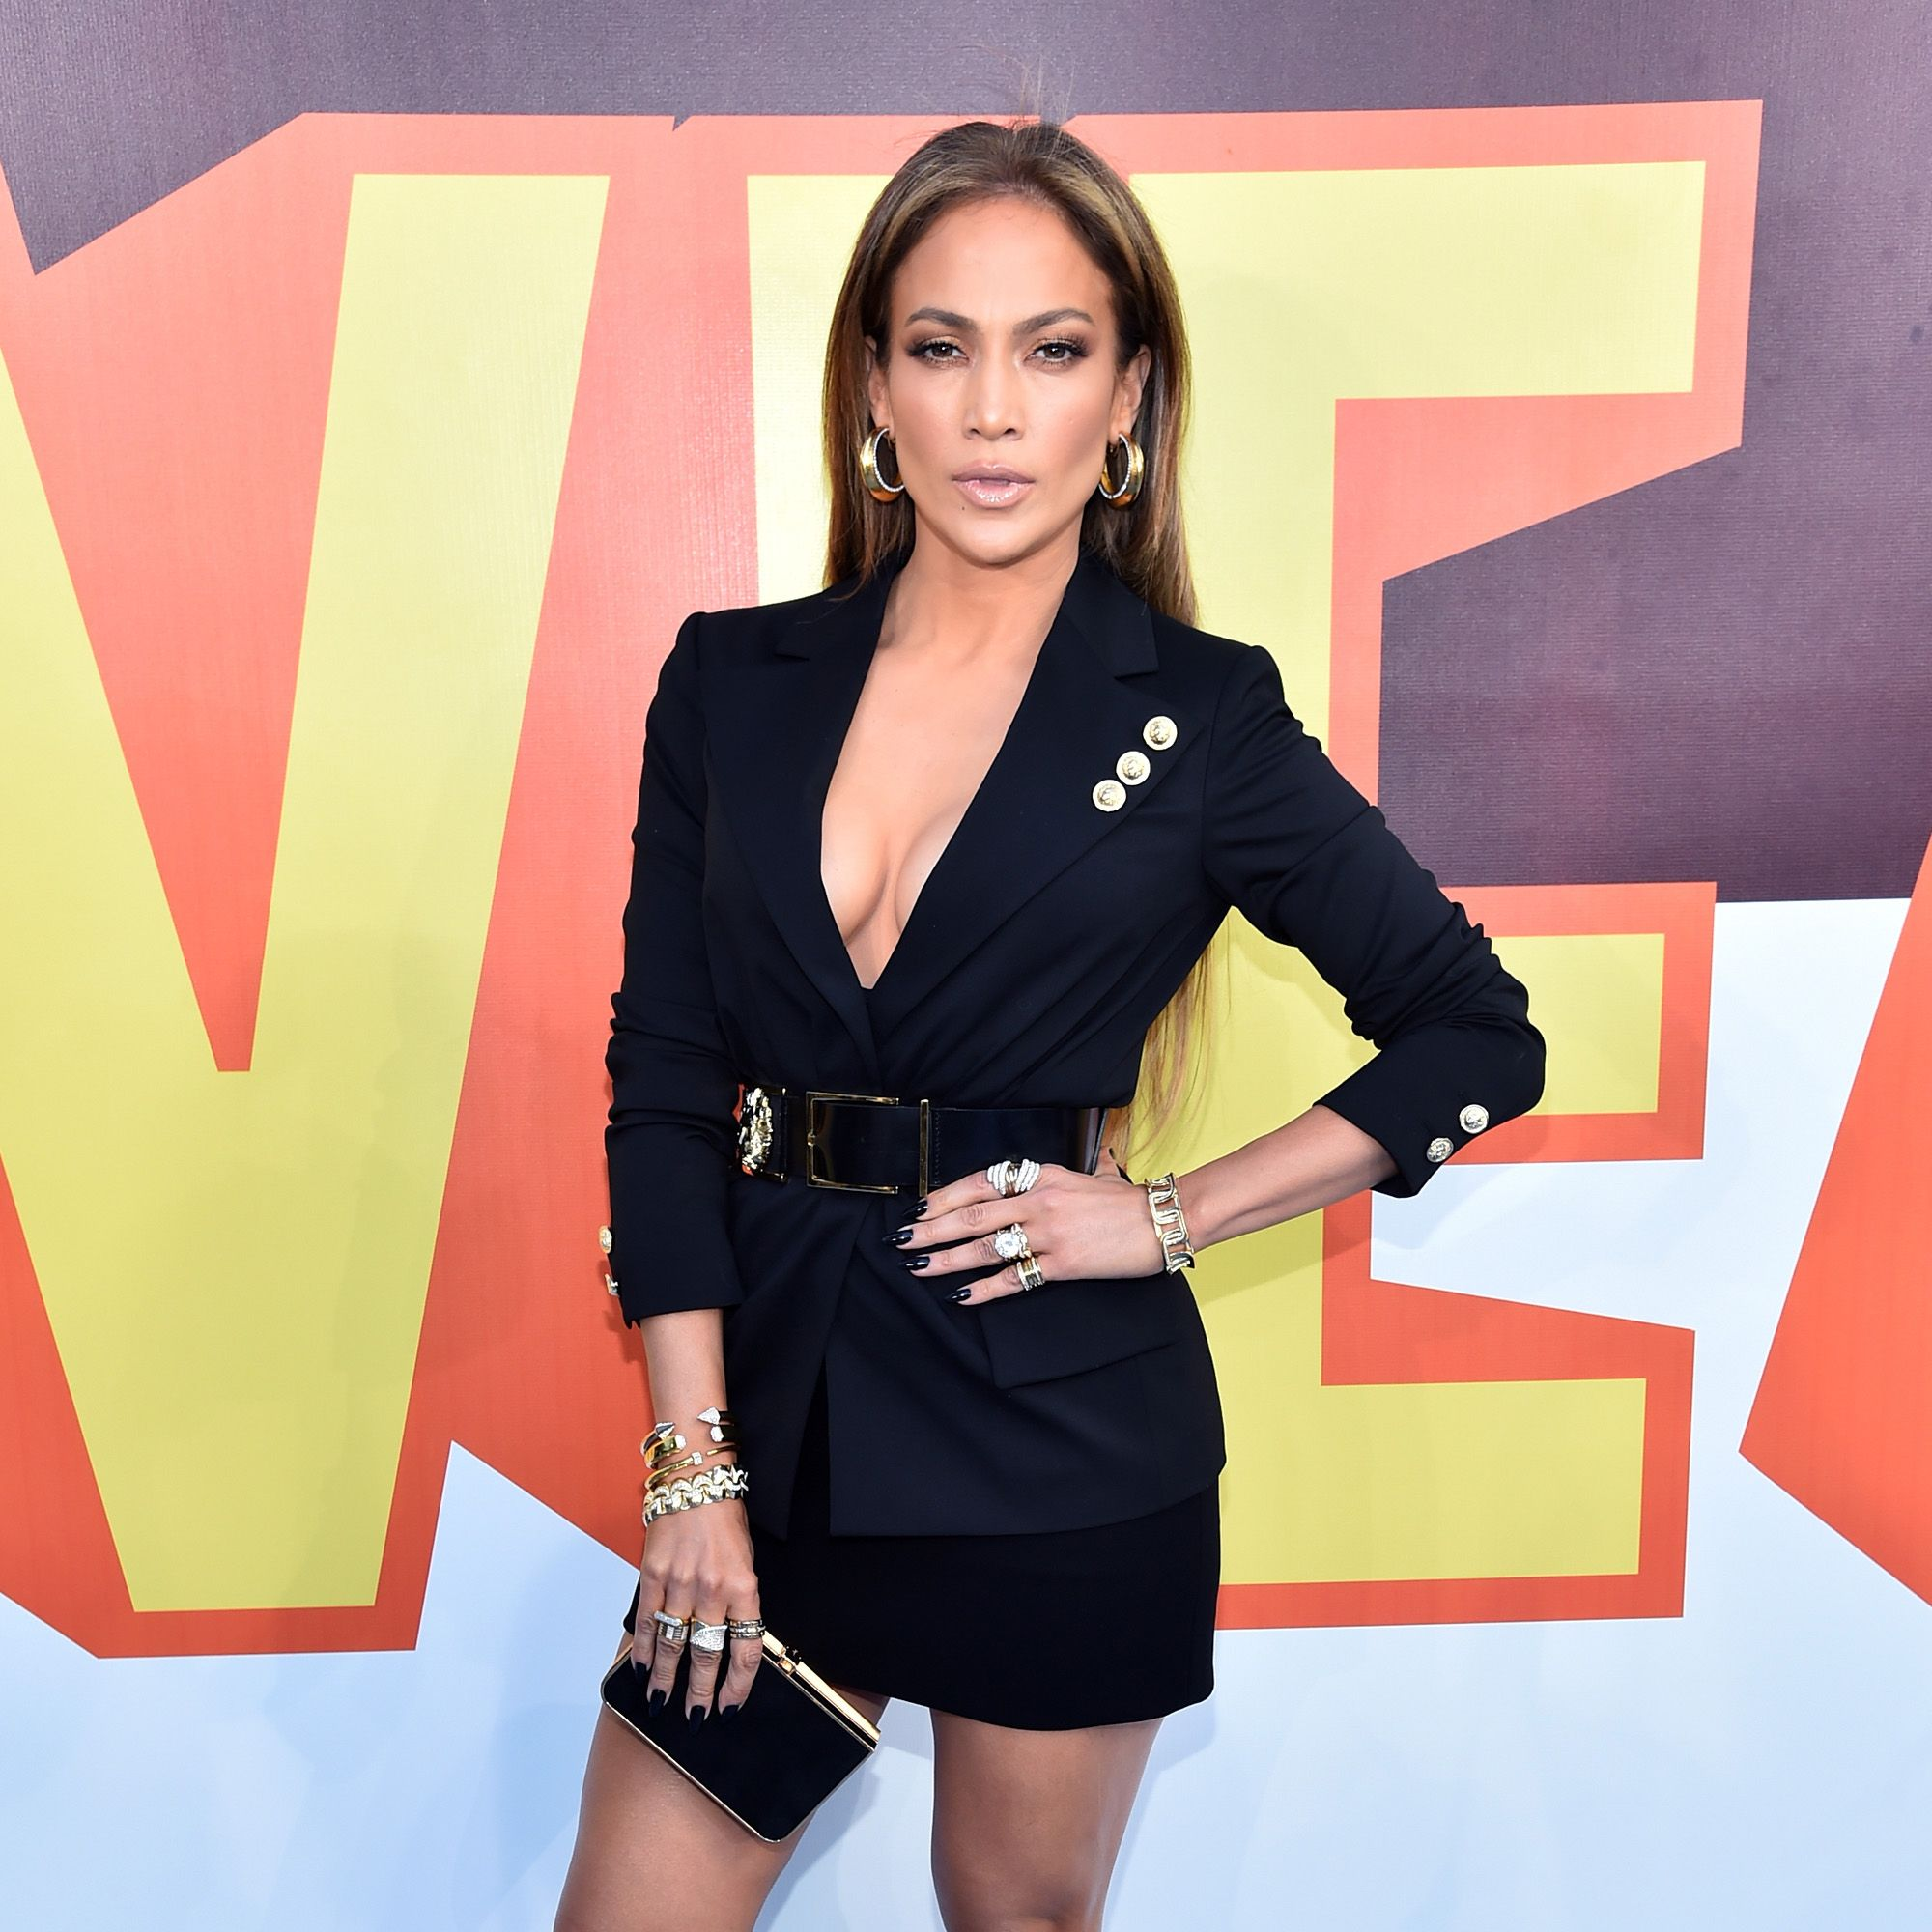 LOS ANGELES, CA - APRIL 12:  Actress/singer Jennifer Lopez attends The 2015 MTV Movie Awards at Nokia Theatre L.A. Live on April 12, 2015 in Los Angeles, California.  (Photo by Alberto E. Rodriguez/Getty Images for MTV)